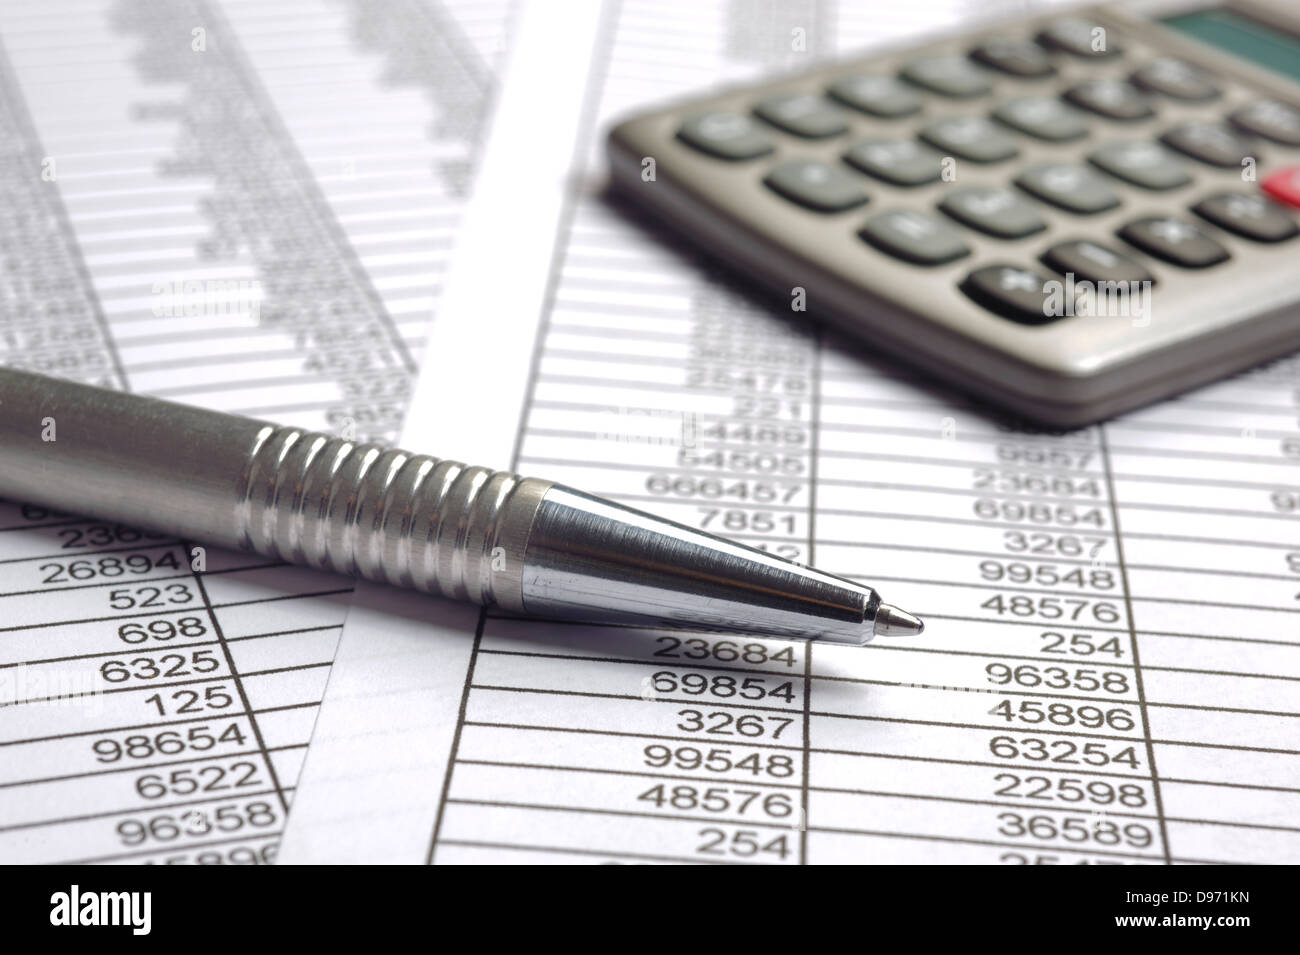 finance business calculation with pen and calculator - Stock Image